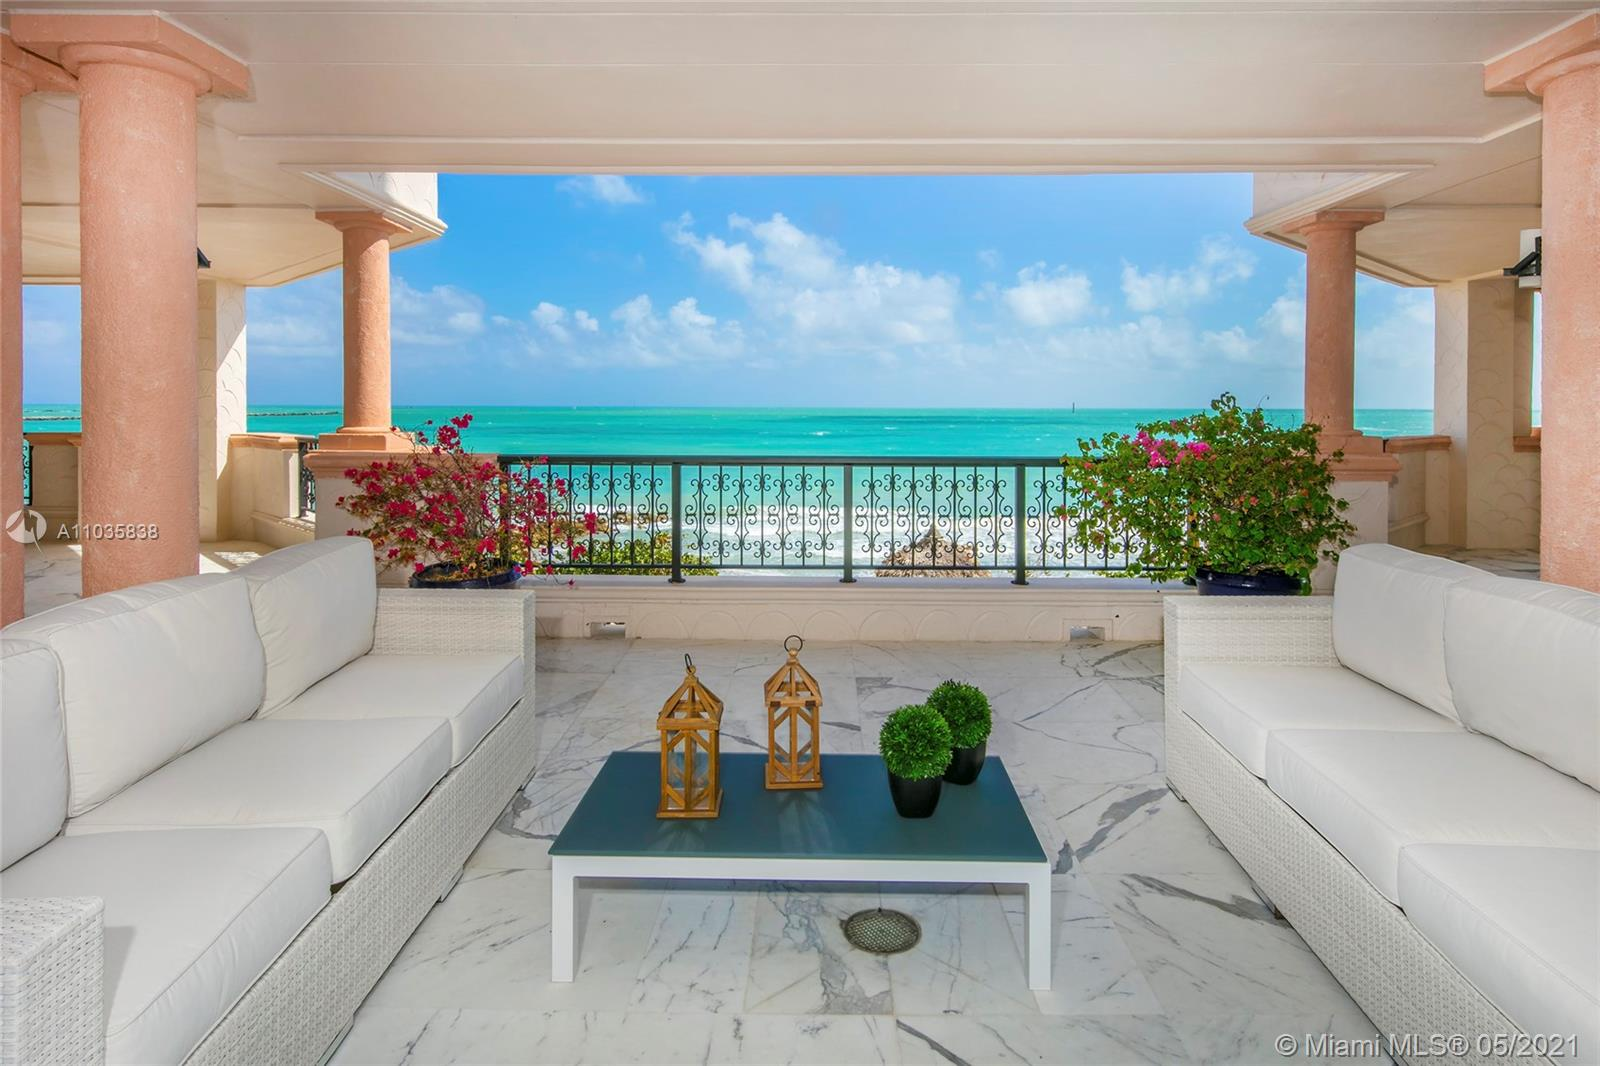 This exclusive oceanfront center stack unit on Fisher Island has a unique privileged location as it is as close to the ocean as you can get, directly in front of the secluded residence beach, enjoying direct unobstructed views to Government Cut & Atlantic Ocean. Unit has an expansive wraparound terrace, spacious open living & family room, gracious dining room & separate breakfast area all w/amazing ocean views. The spacious unit offers 6,820 SF of luxury w/5 oversized bedrooms, 6 +2 BA. One of the oversized bedrooms can be easily converted into a sixth bedroom. The principal suite sports a full office space, separate dual walk-in closets & luxurious dual marble bathrooms. Unit is in good living condition, but it is ideal to be renovated in the near future as it has a clean open floor plan.